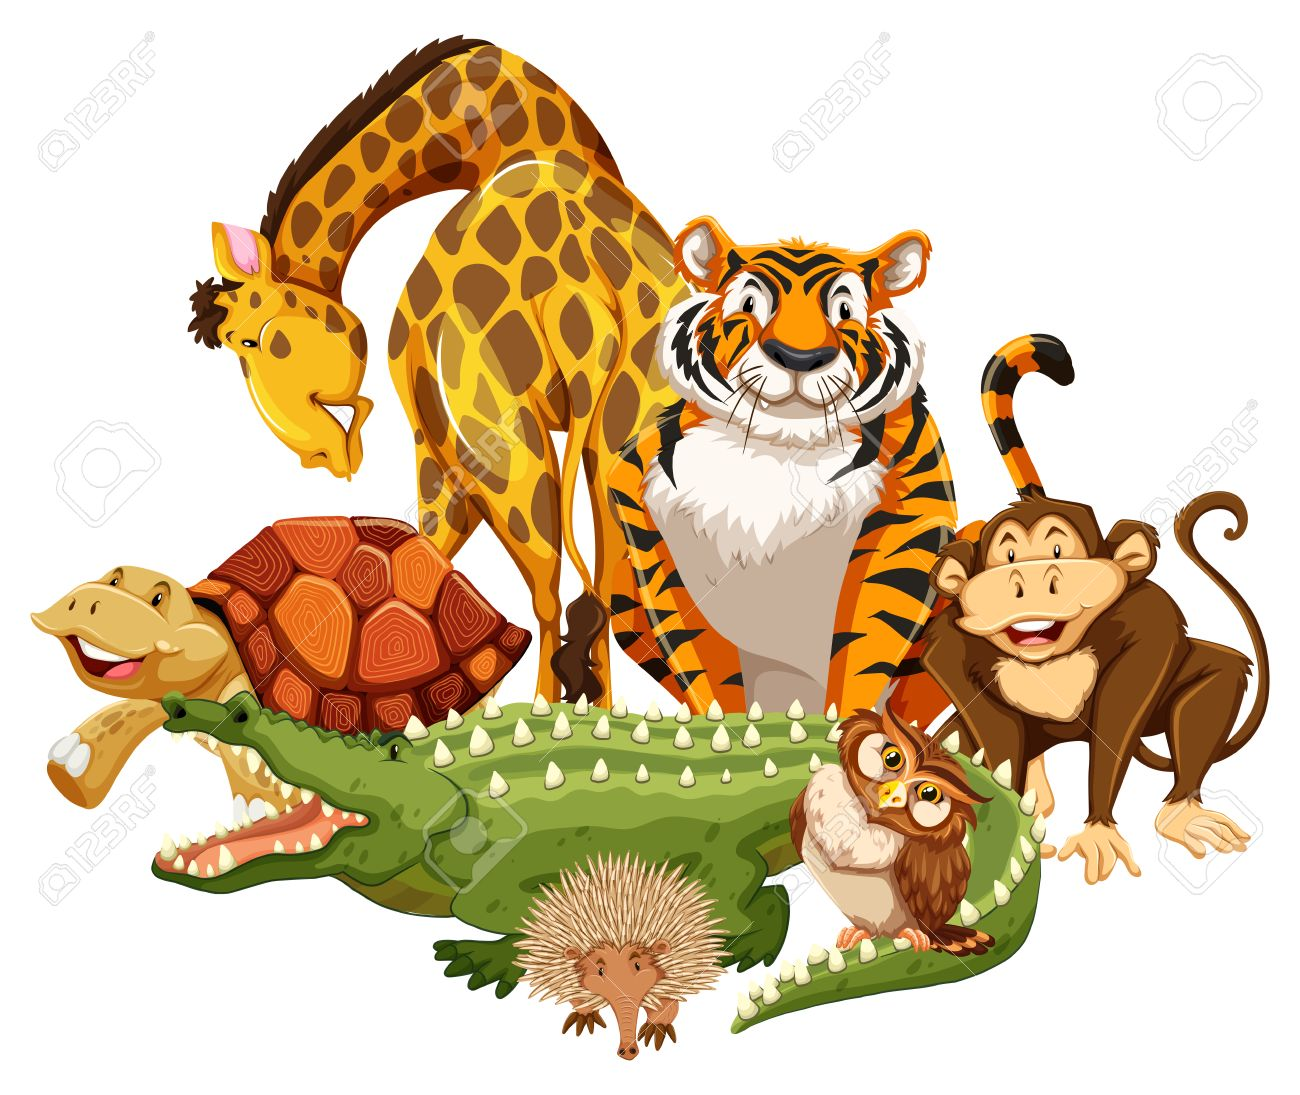 Group Of Wild Animals On A White Background Royalty Free Cliparts Vectors And Stock Illustration Image 41170726